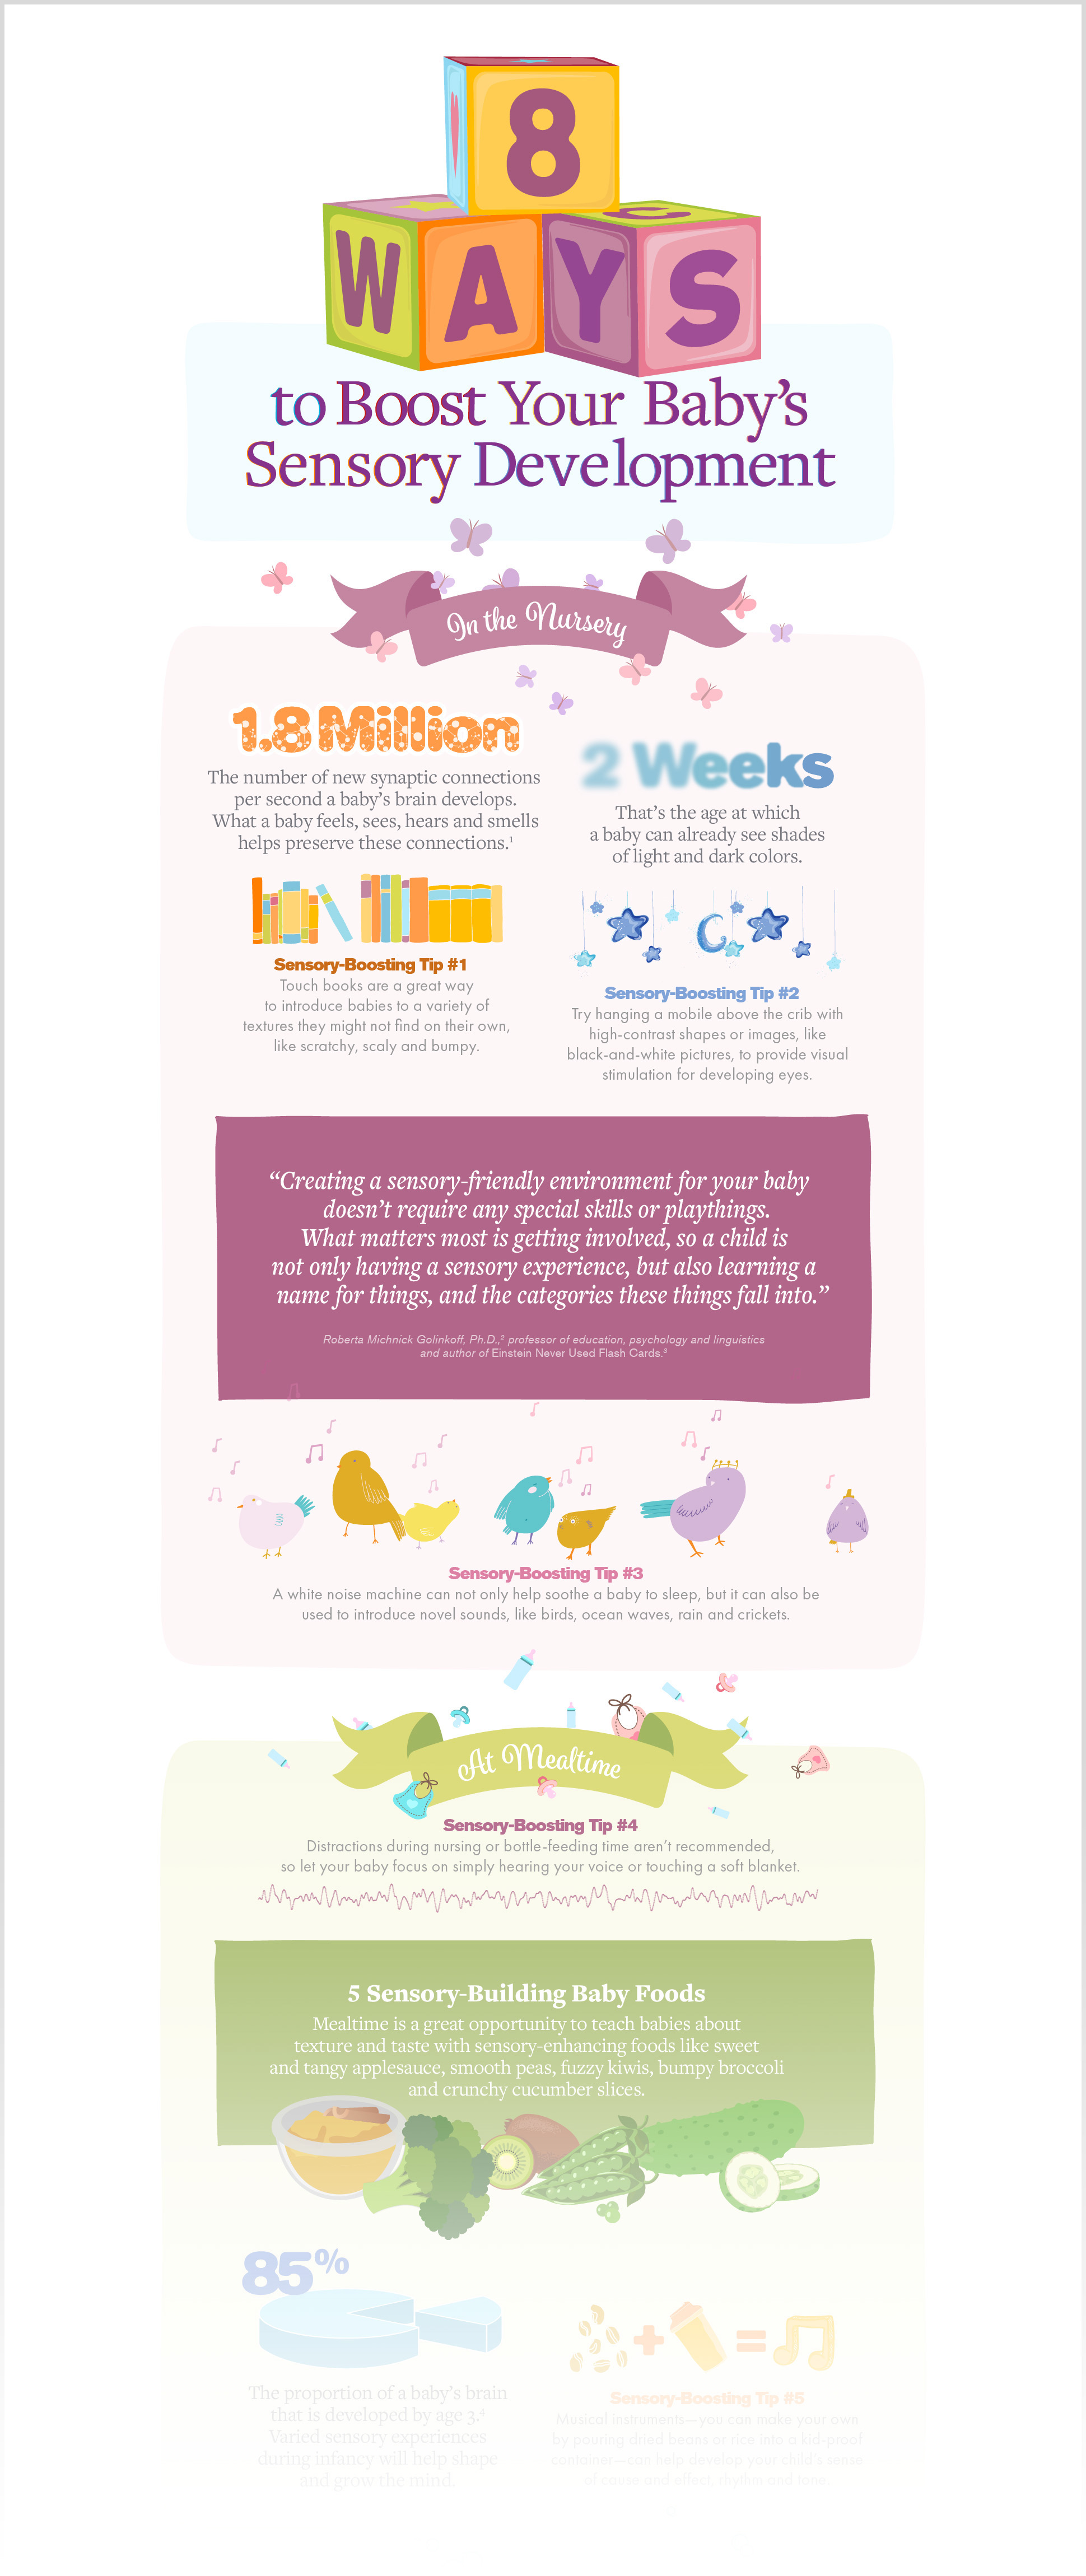 8 Ways to Boost Your Baby's Sensory Development Infographic